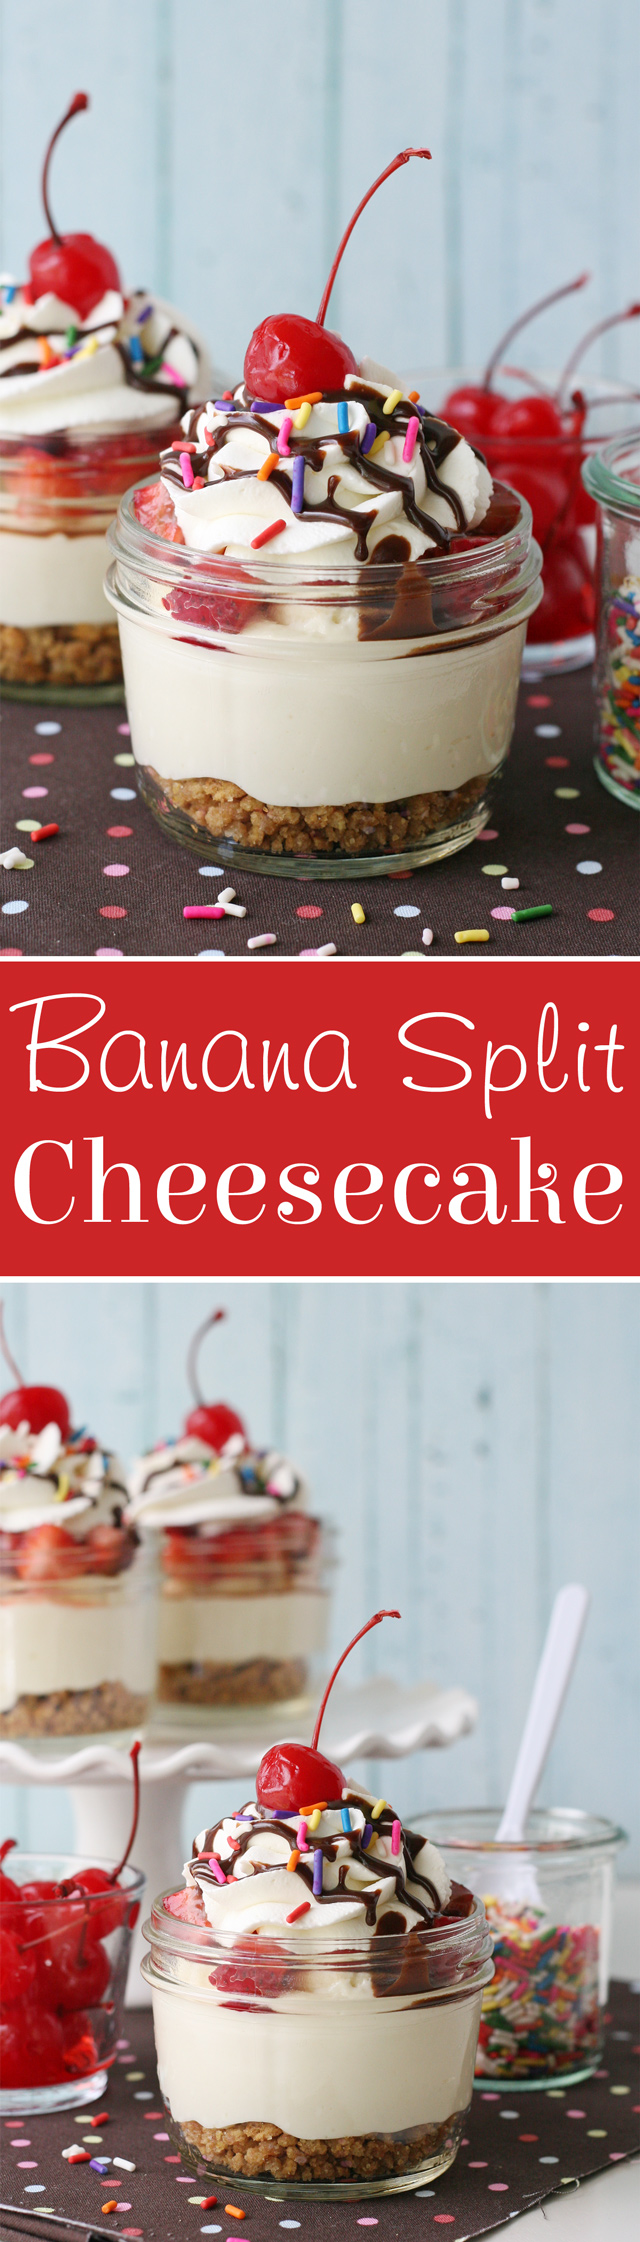 No-Bake Banana Split Cheesecake